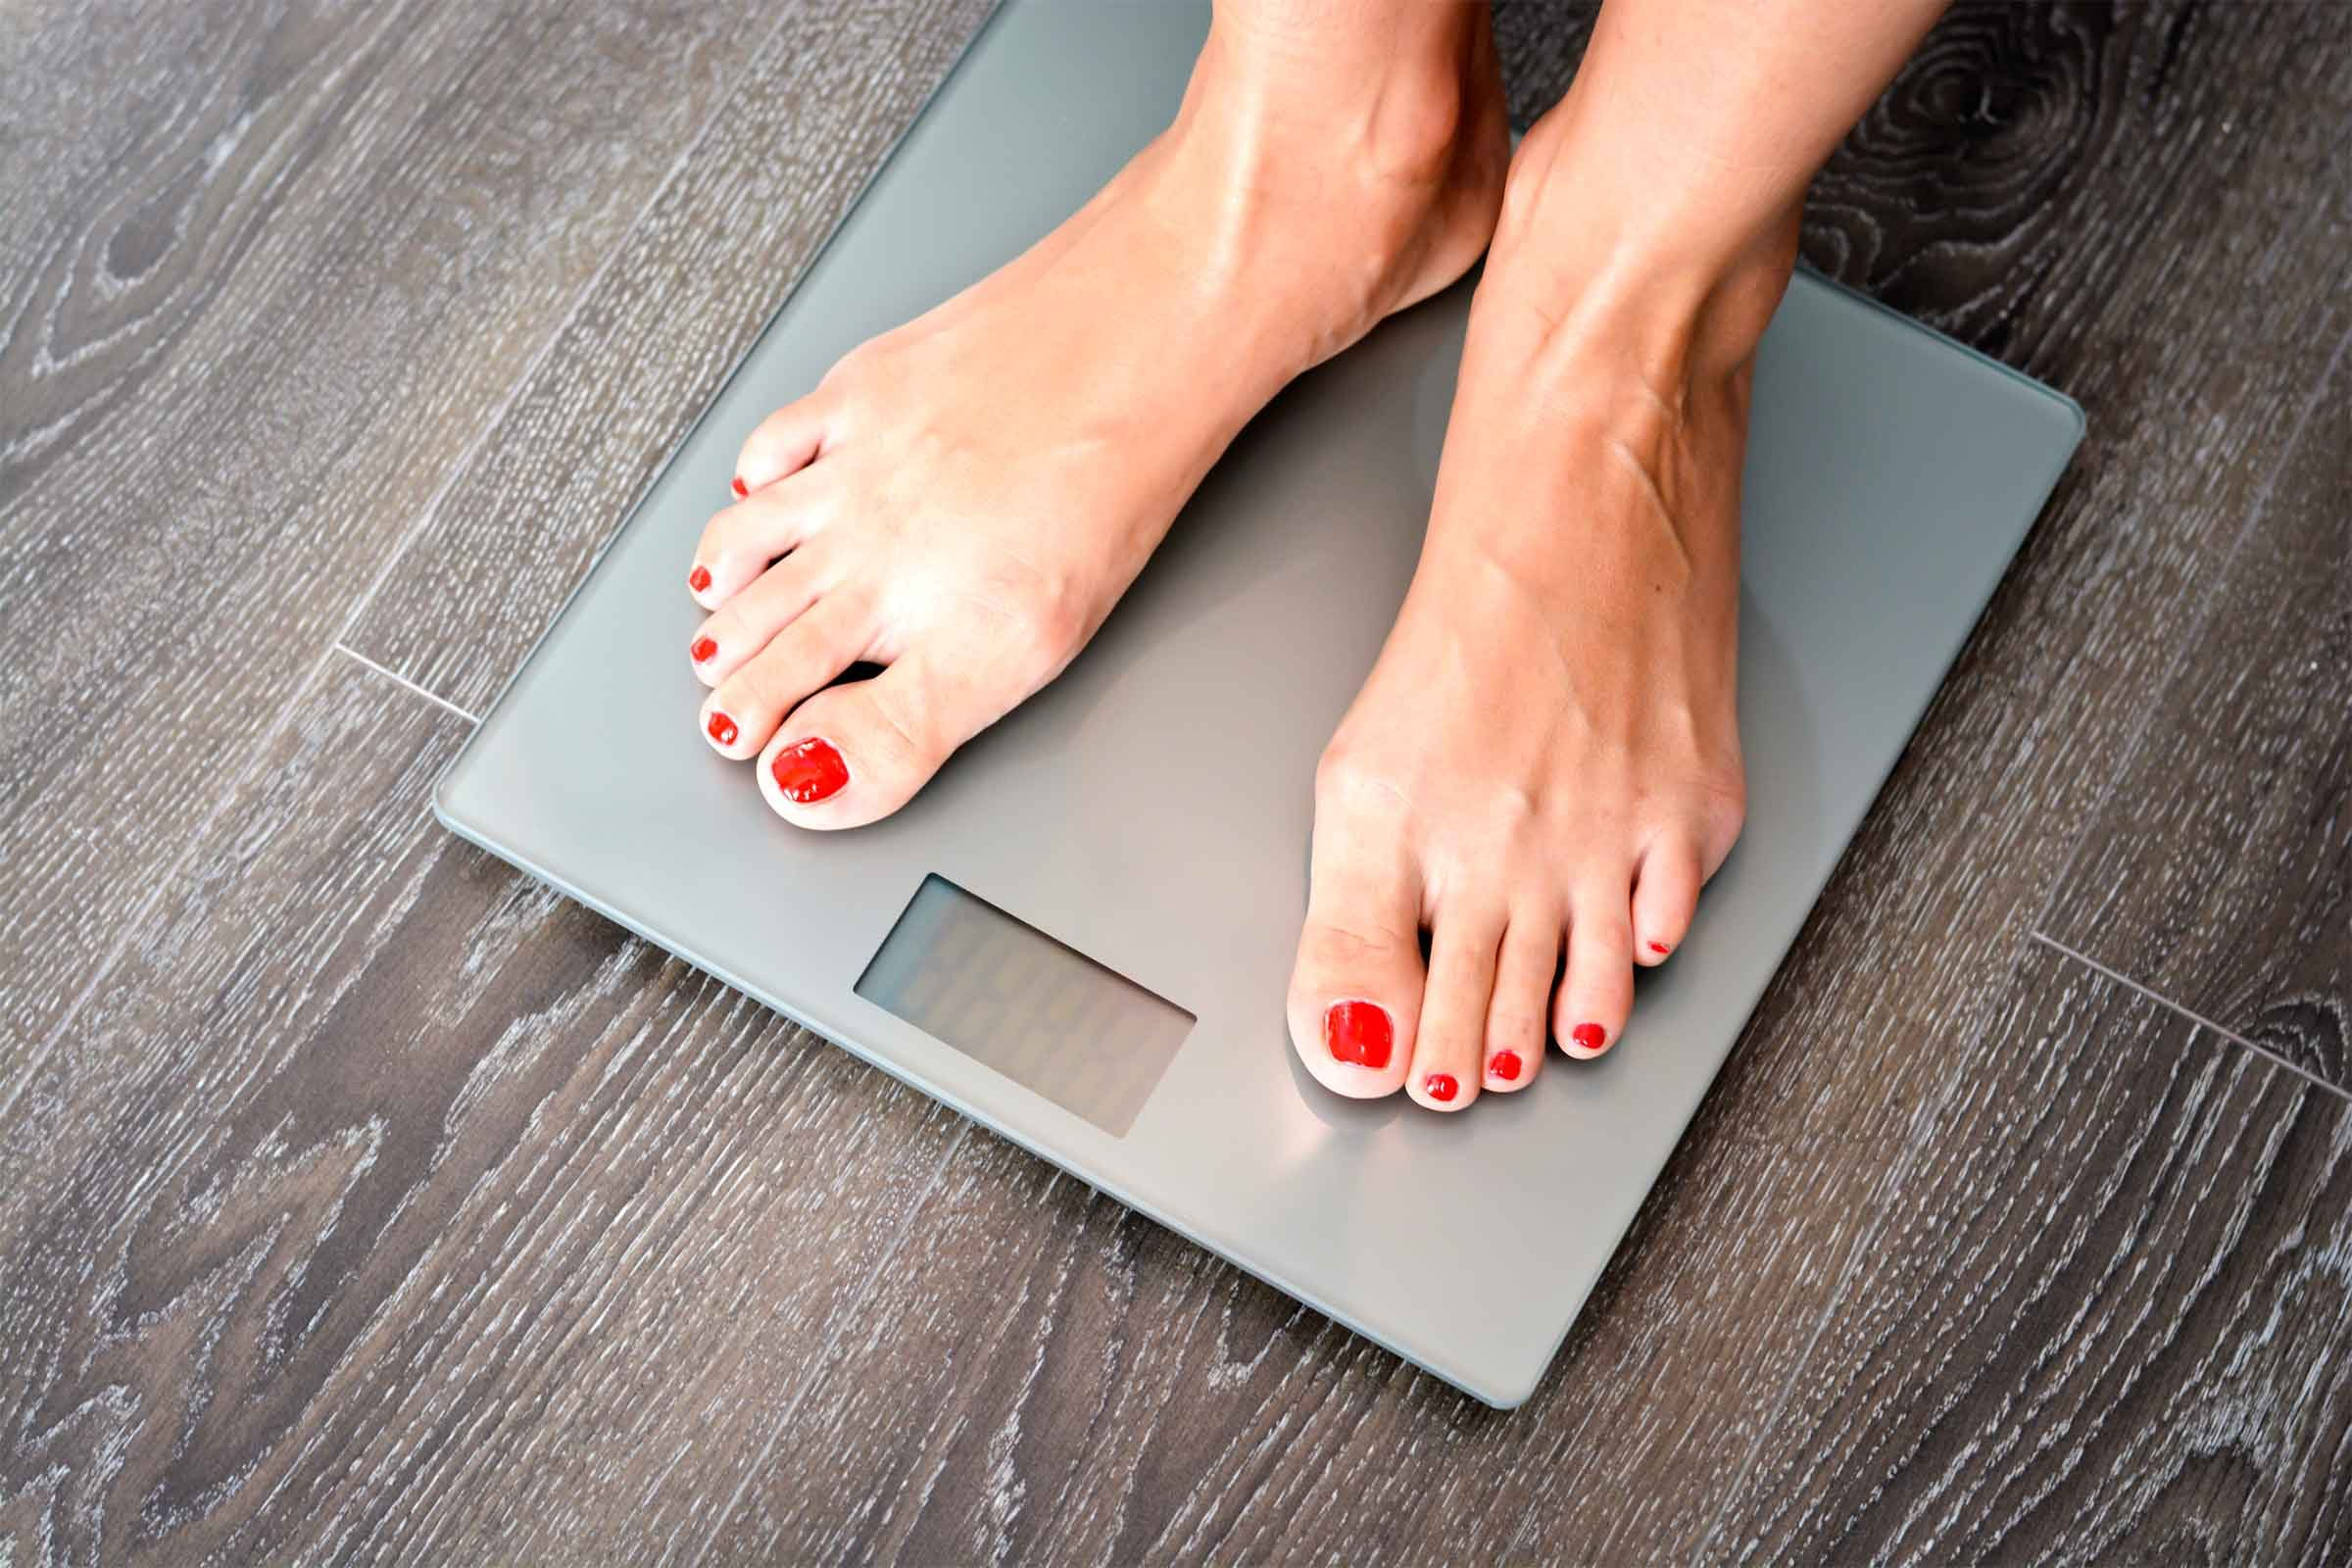 Do You Lose Weight On Birth Control Pills